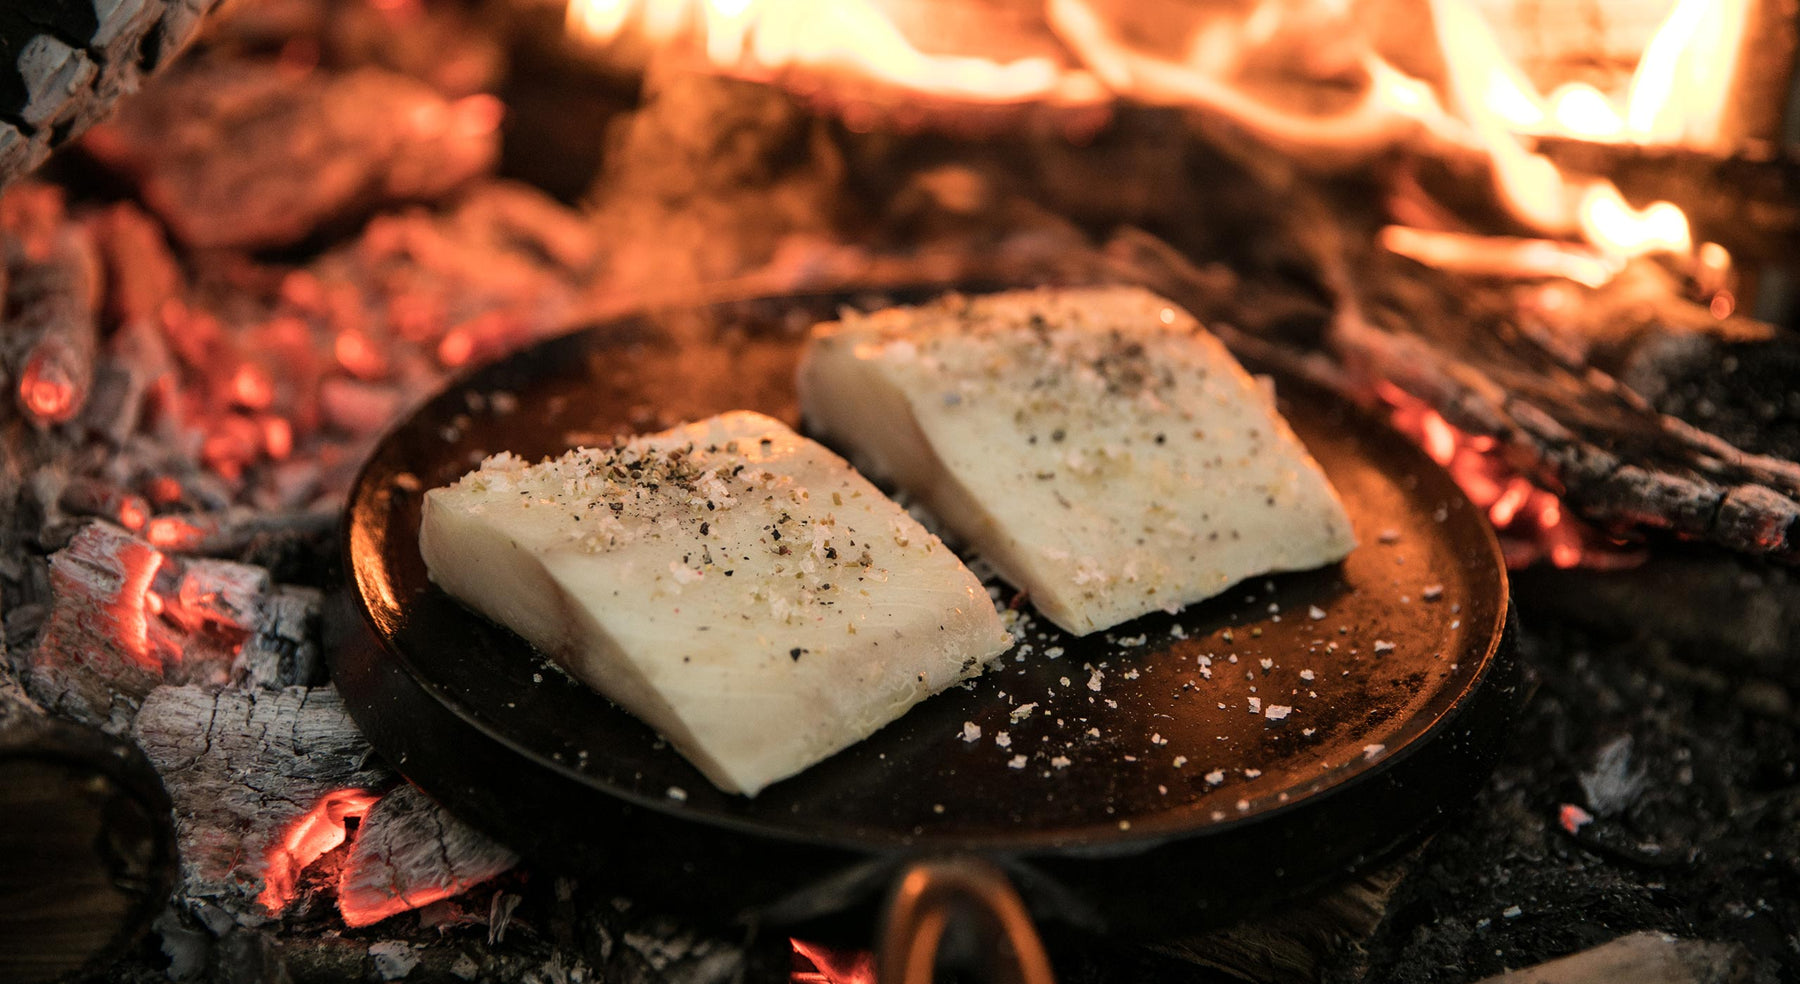 Wood-Fire Grilled Sablefish (Black Cod) Recipe